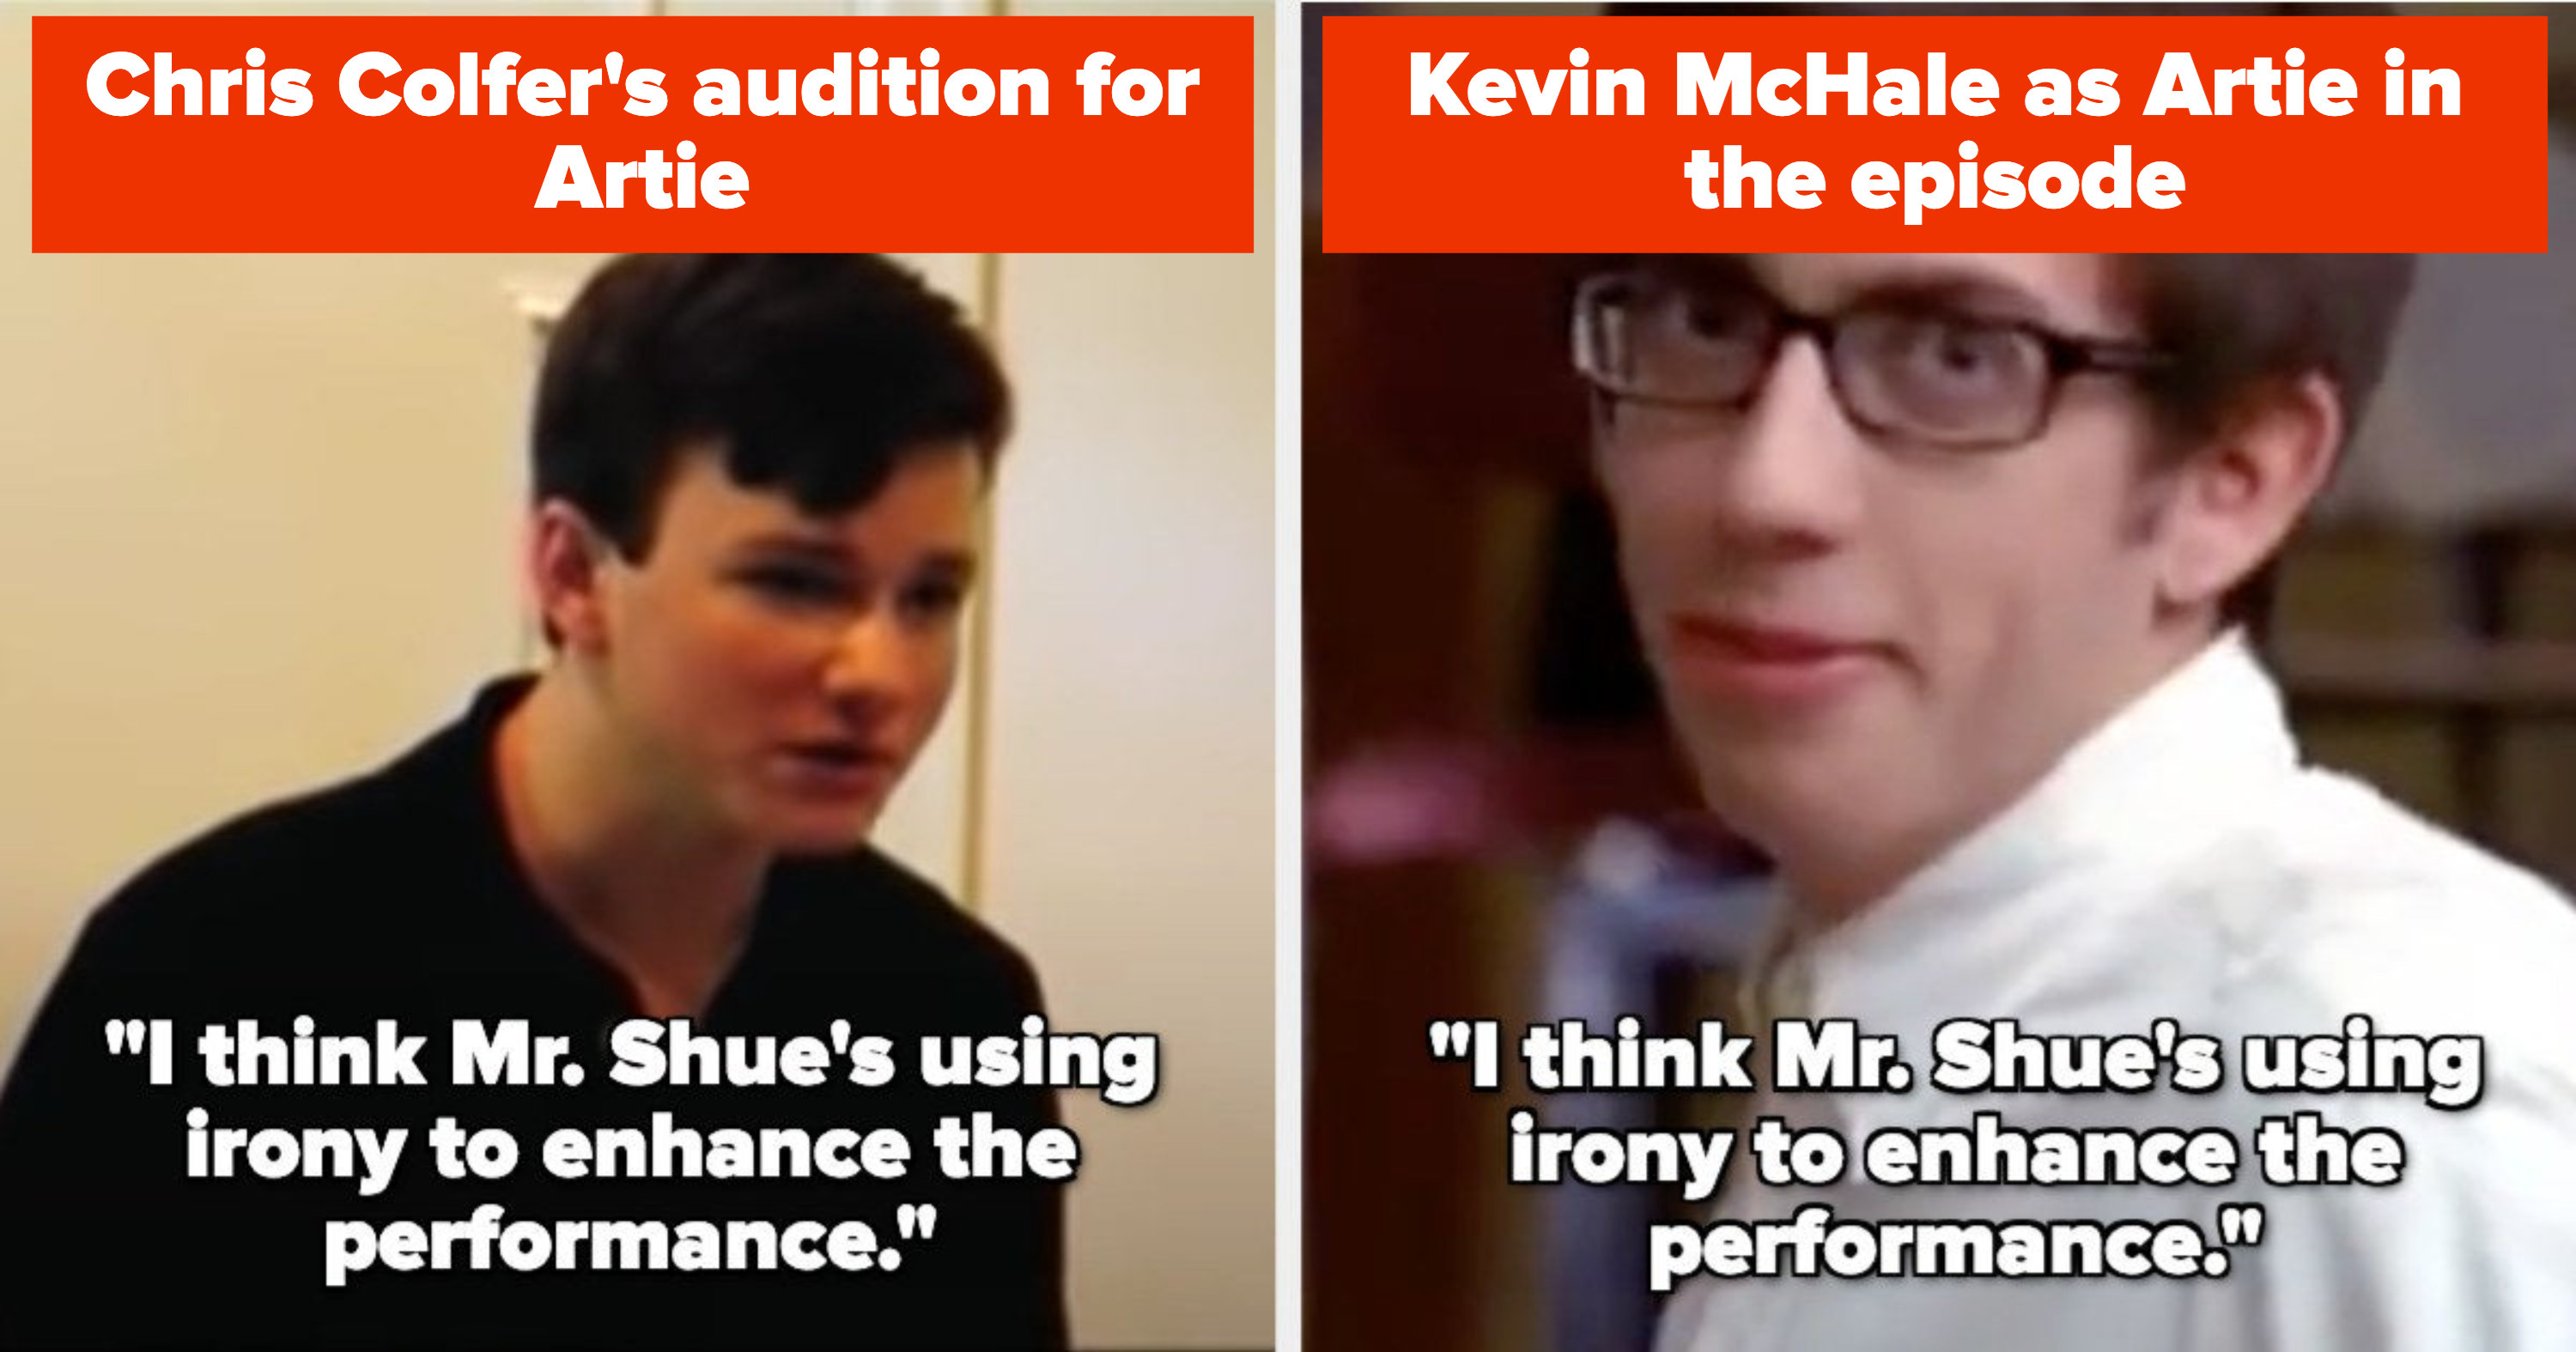 "in Chris Colfer's audition for Artie, he says ""I think Mr. Shue's using irony to enhance the performance,"" and in the actual episode, Kevin McHale as Artie says the same thing"